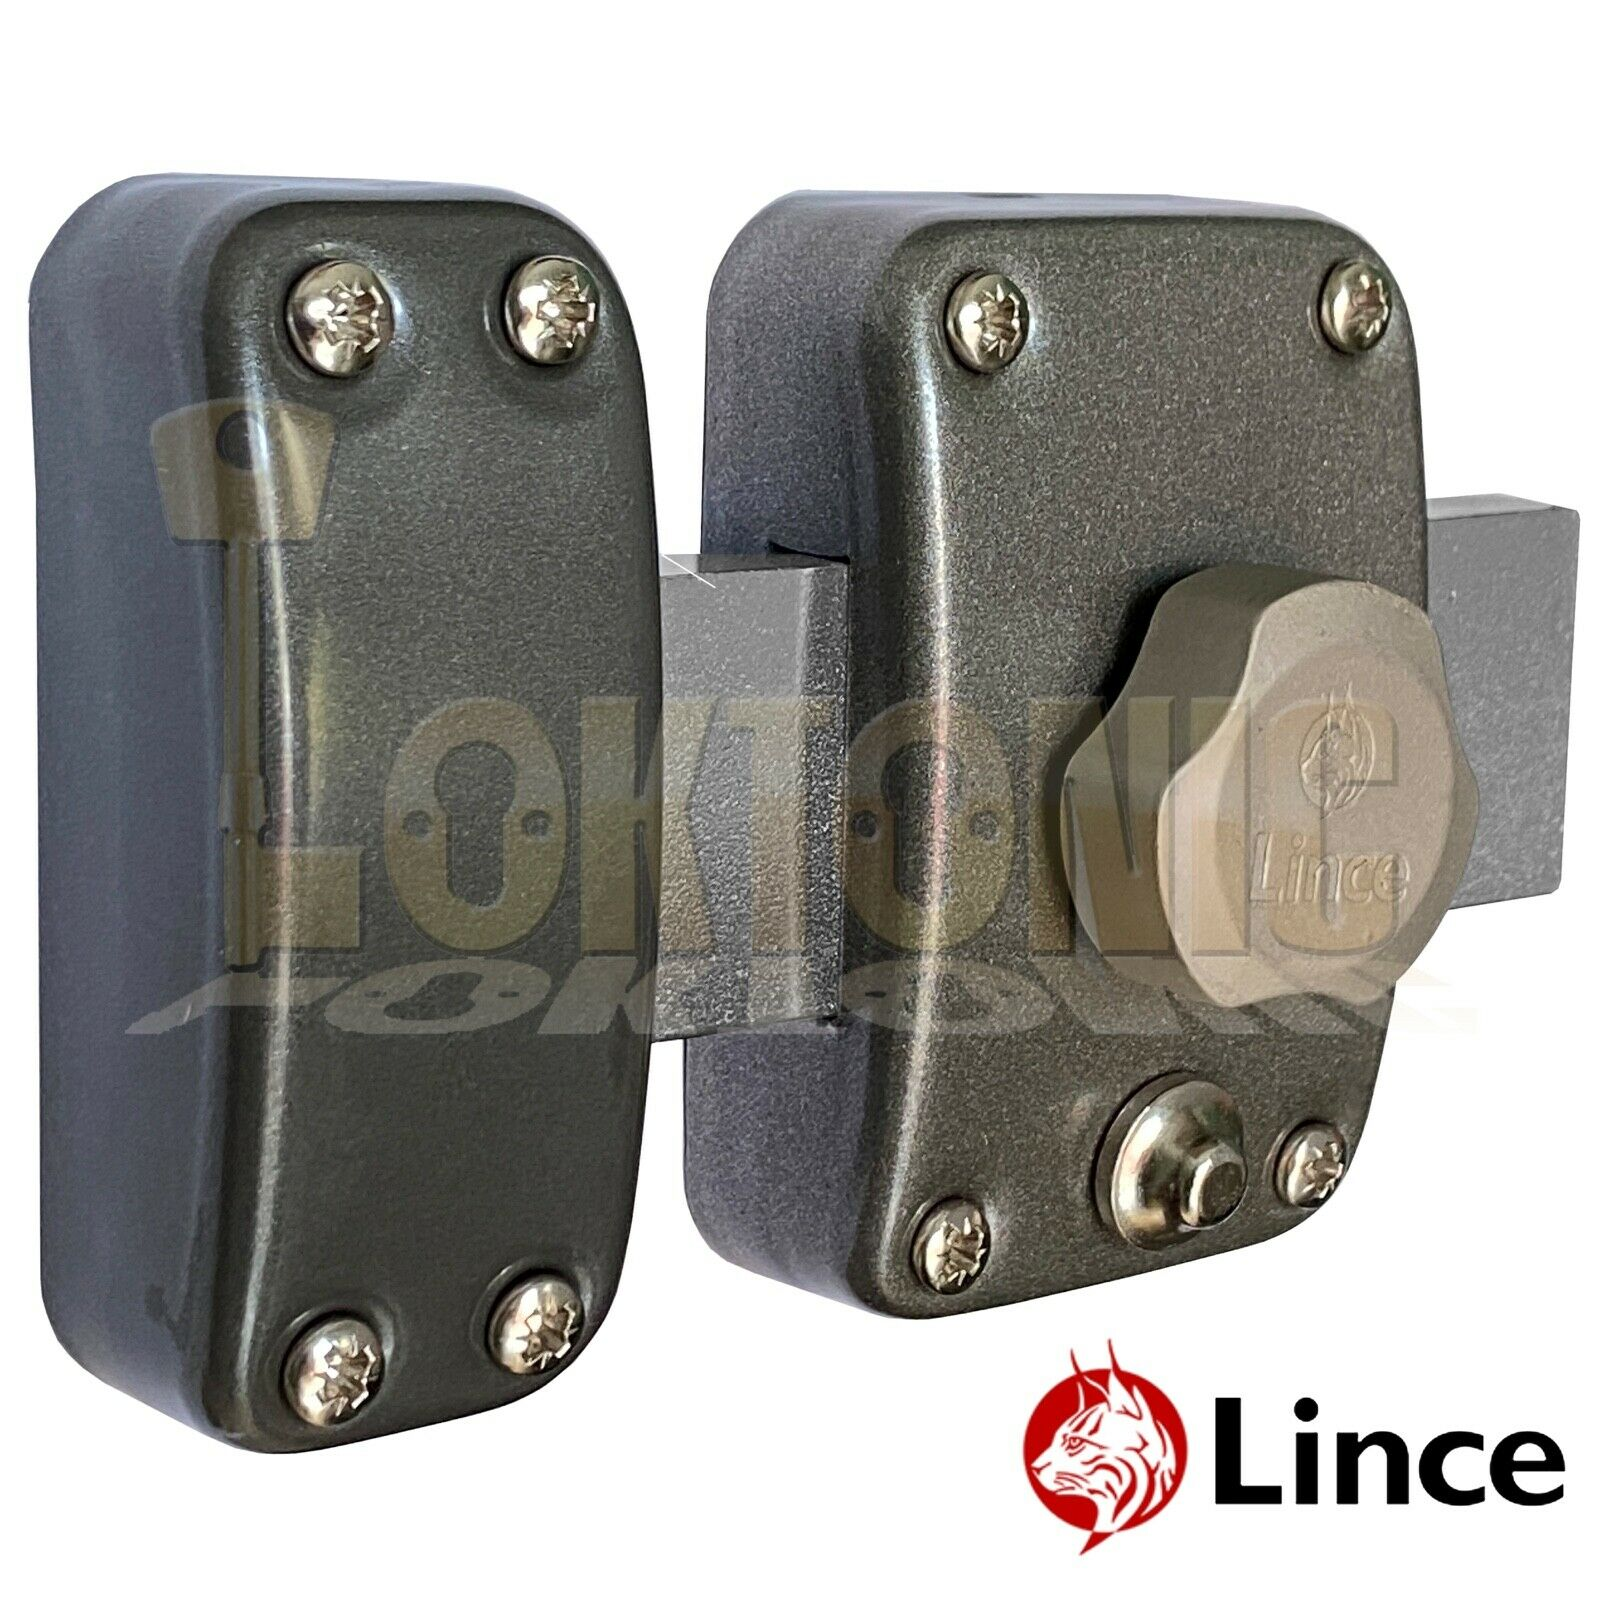 Lince Lock High Security Heavy Duty Garden Gate Shed Garage Rim Fitted Dead Bolt